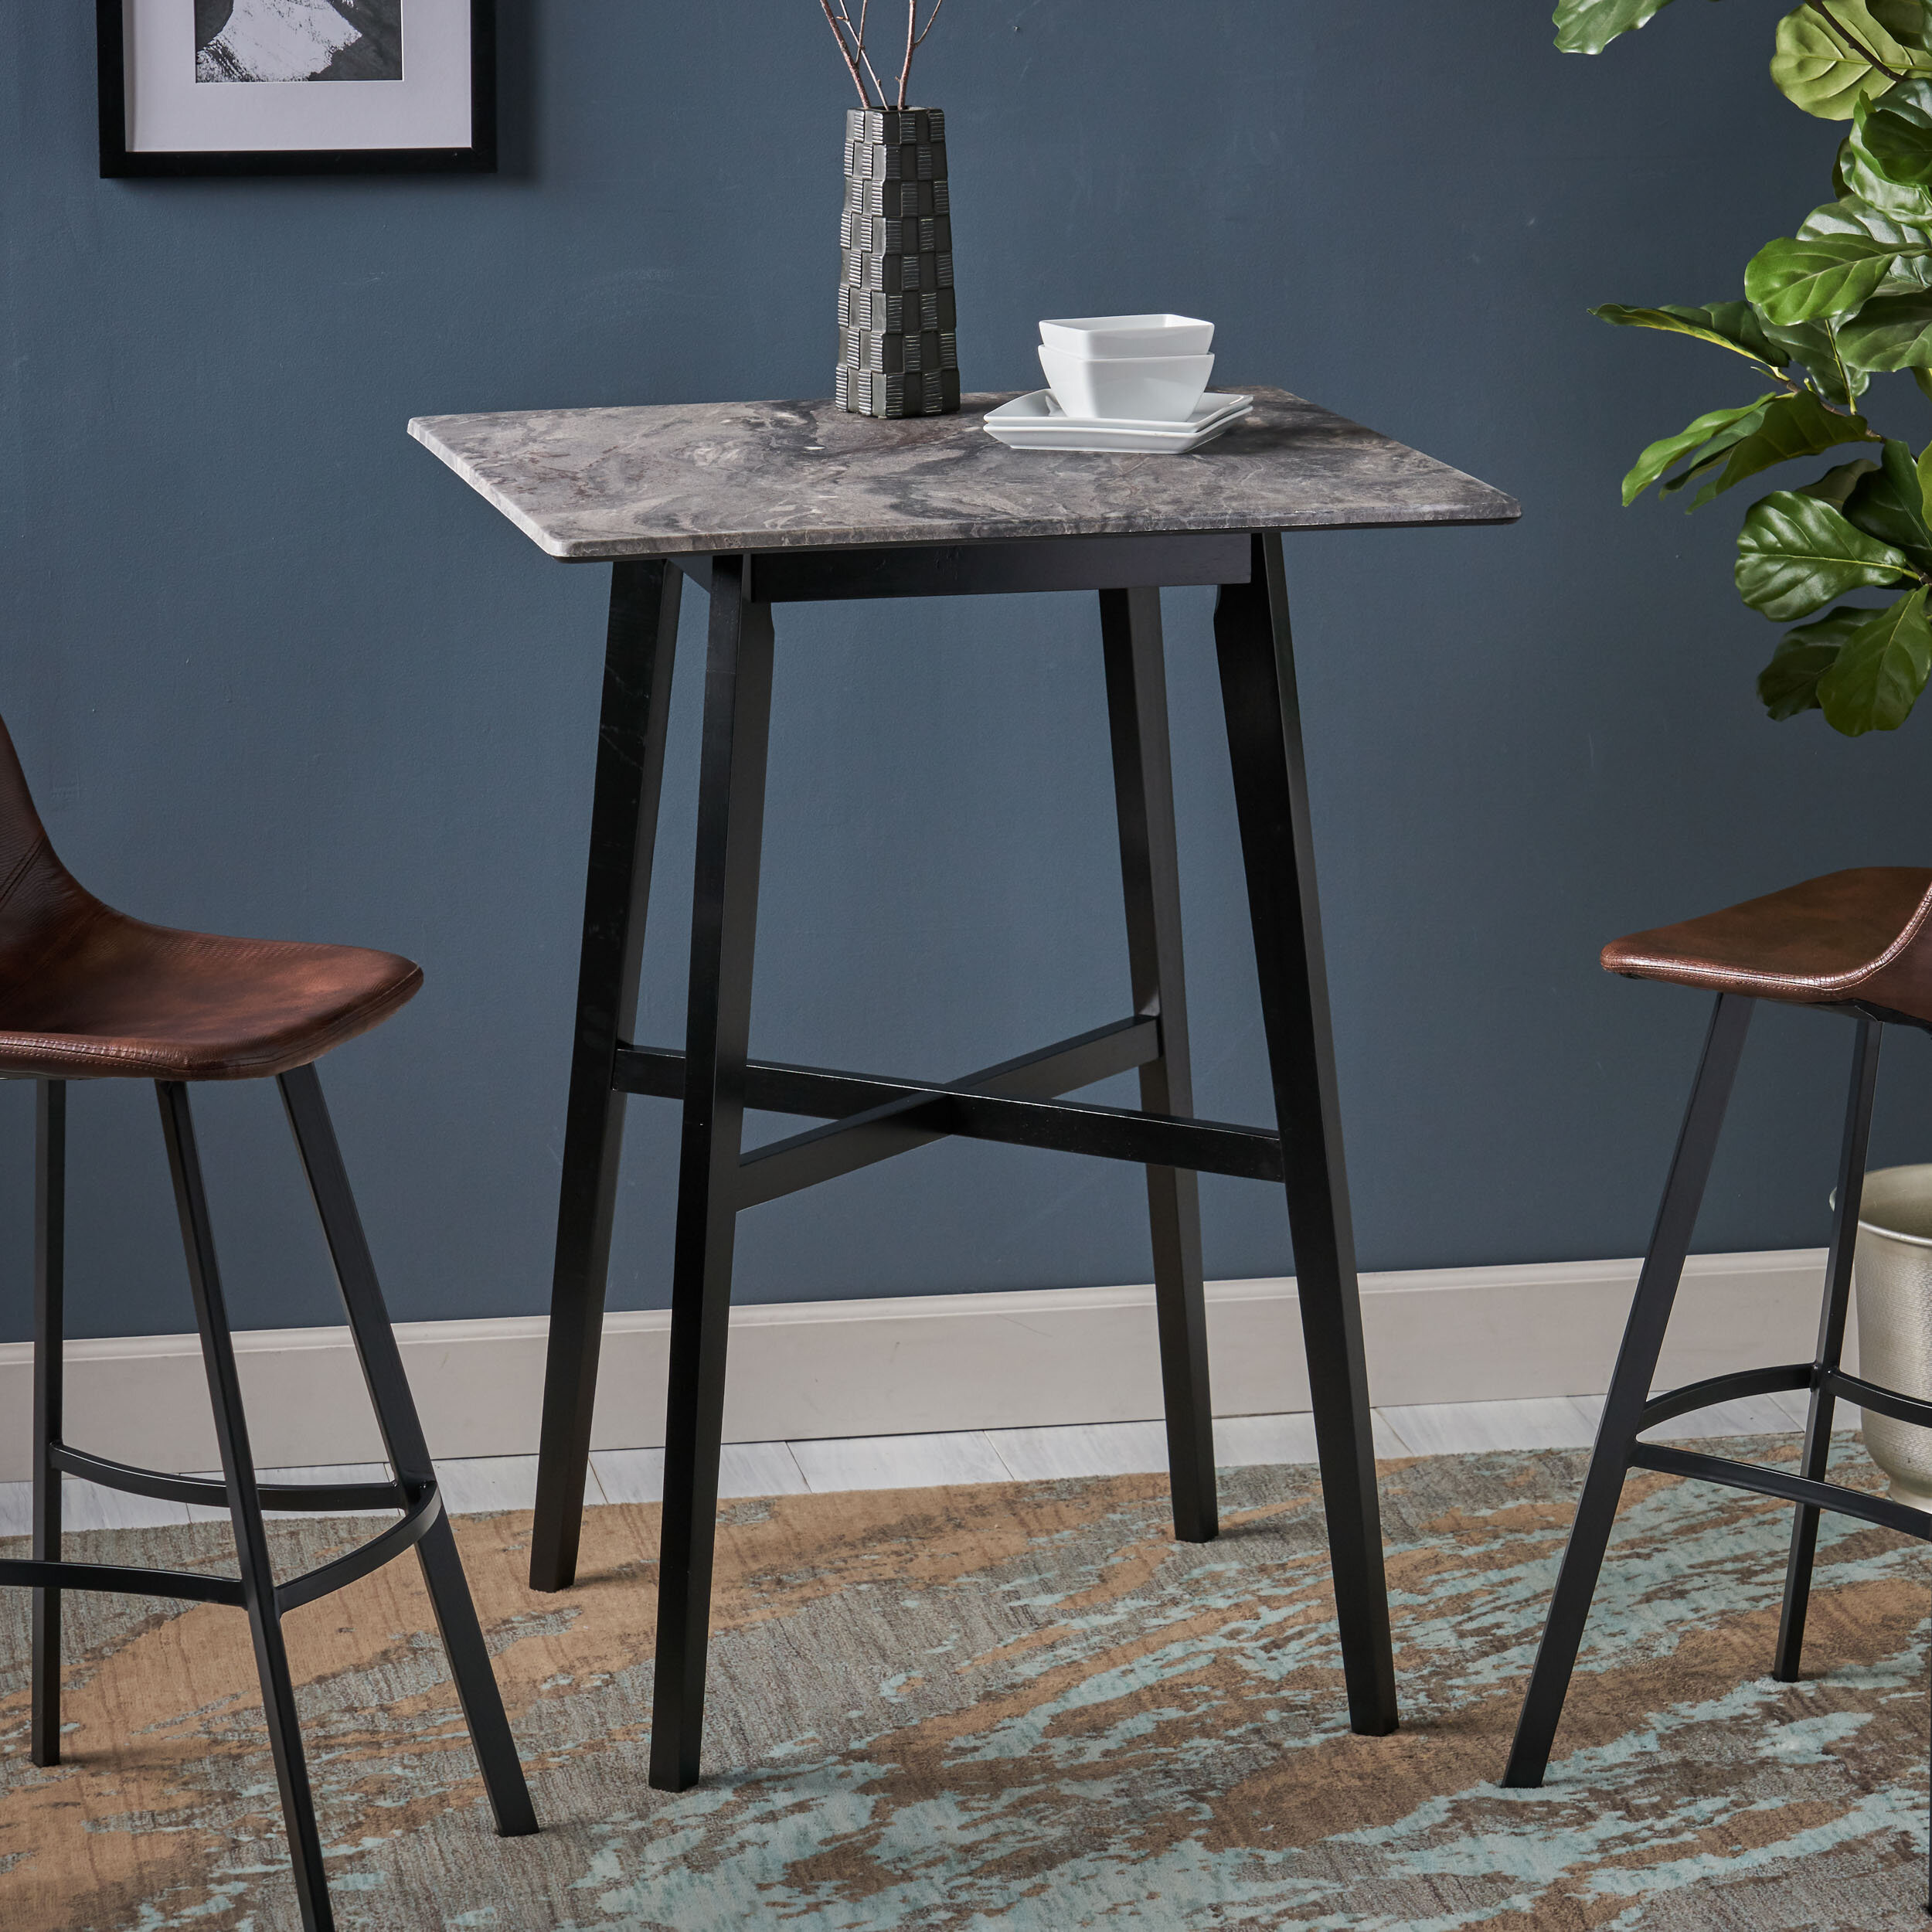 Marble Pub Table Kitchen Dining Tables You Ll Love In 2021 Wayfair